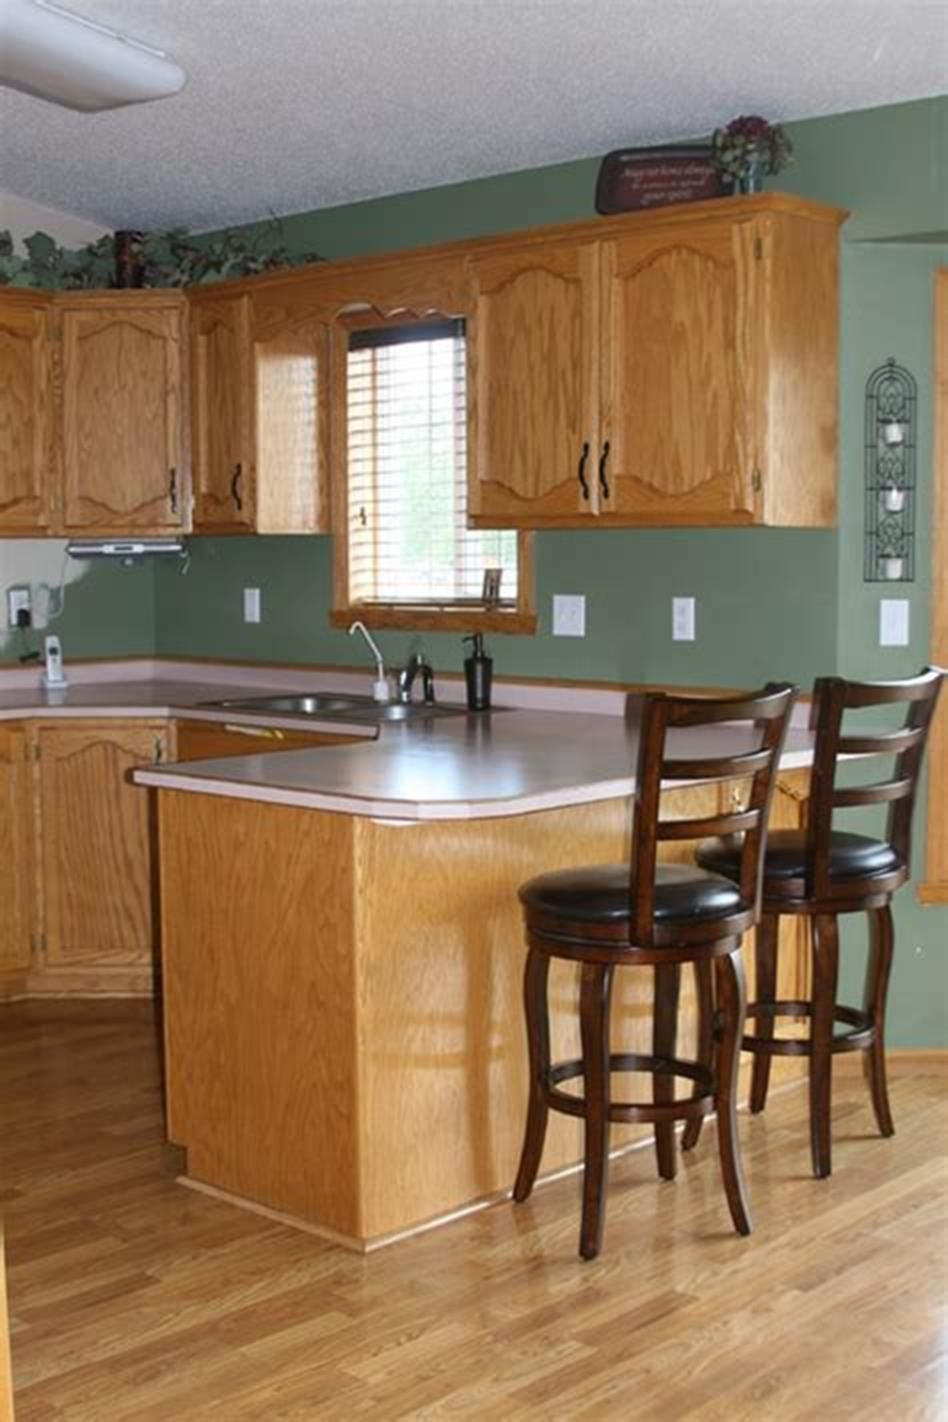 30 Affordable Kitchens With Oak Cabinets Ideas | Oak kitchen cabinets, Oak cabinets, Honey oak ...